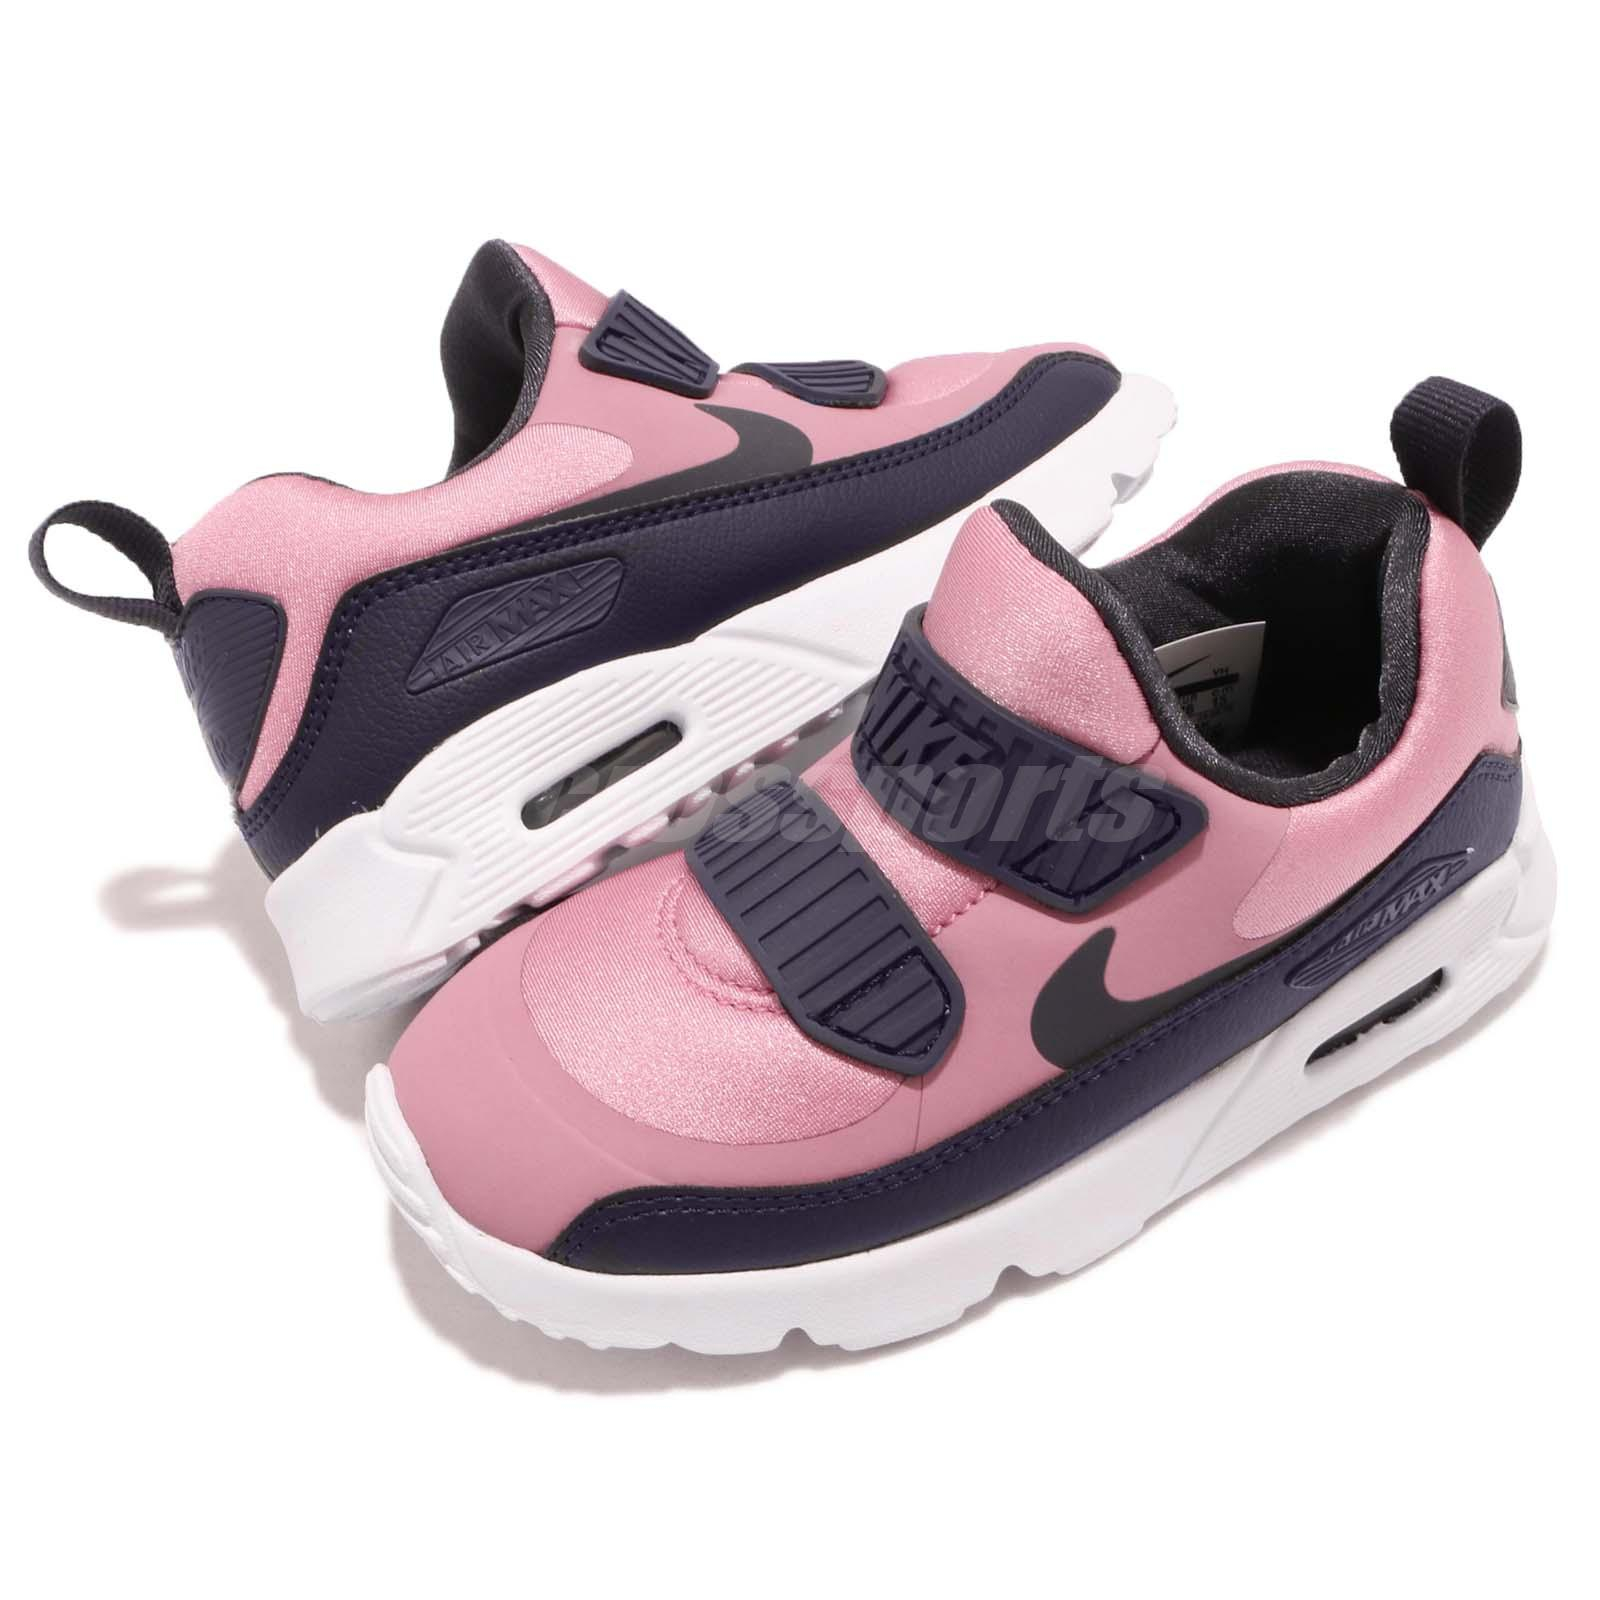 726647fcc2a9 Details about Nike Air Max Tiny 90 TD Pink Gridiron White Toddler Infant  Baby Shoes 881928-602